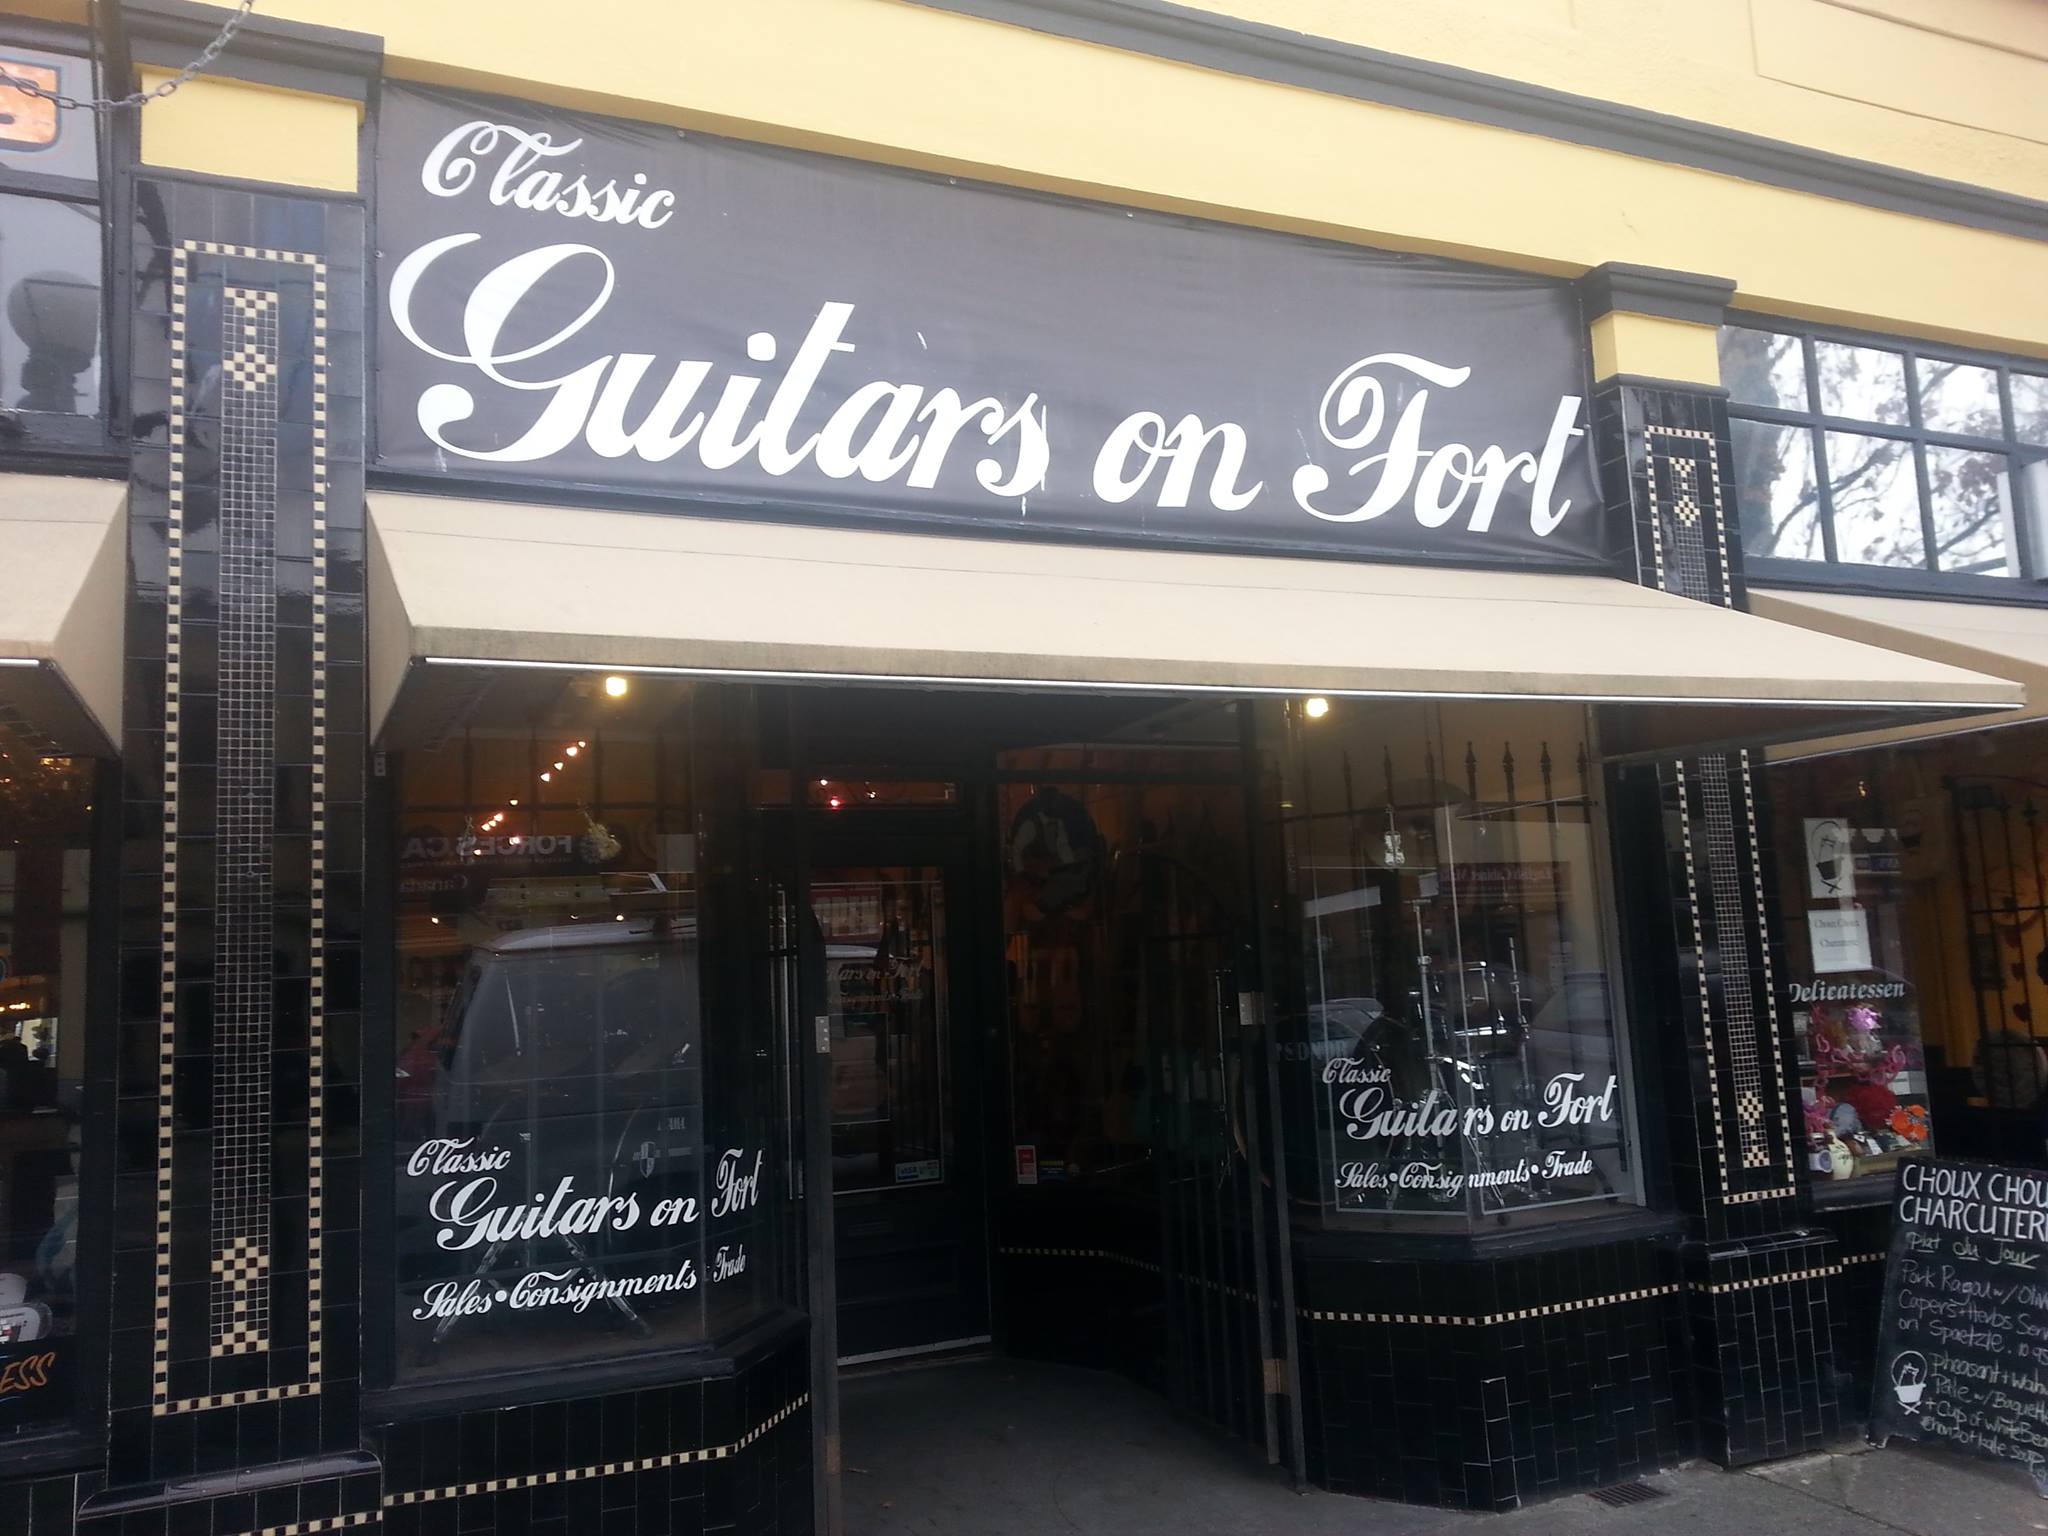 Classic Guitars on Fort